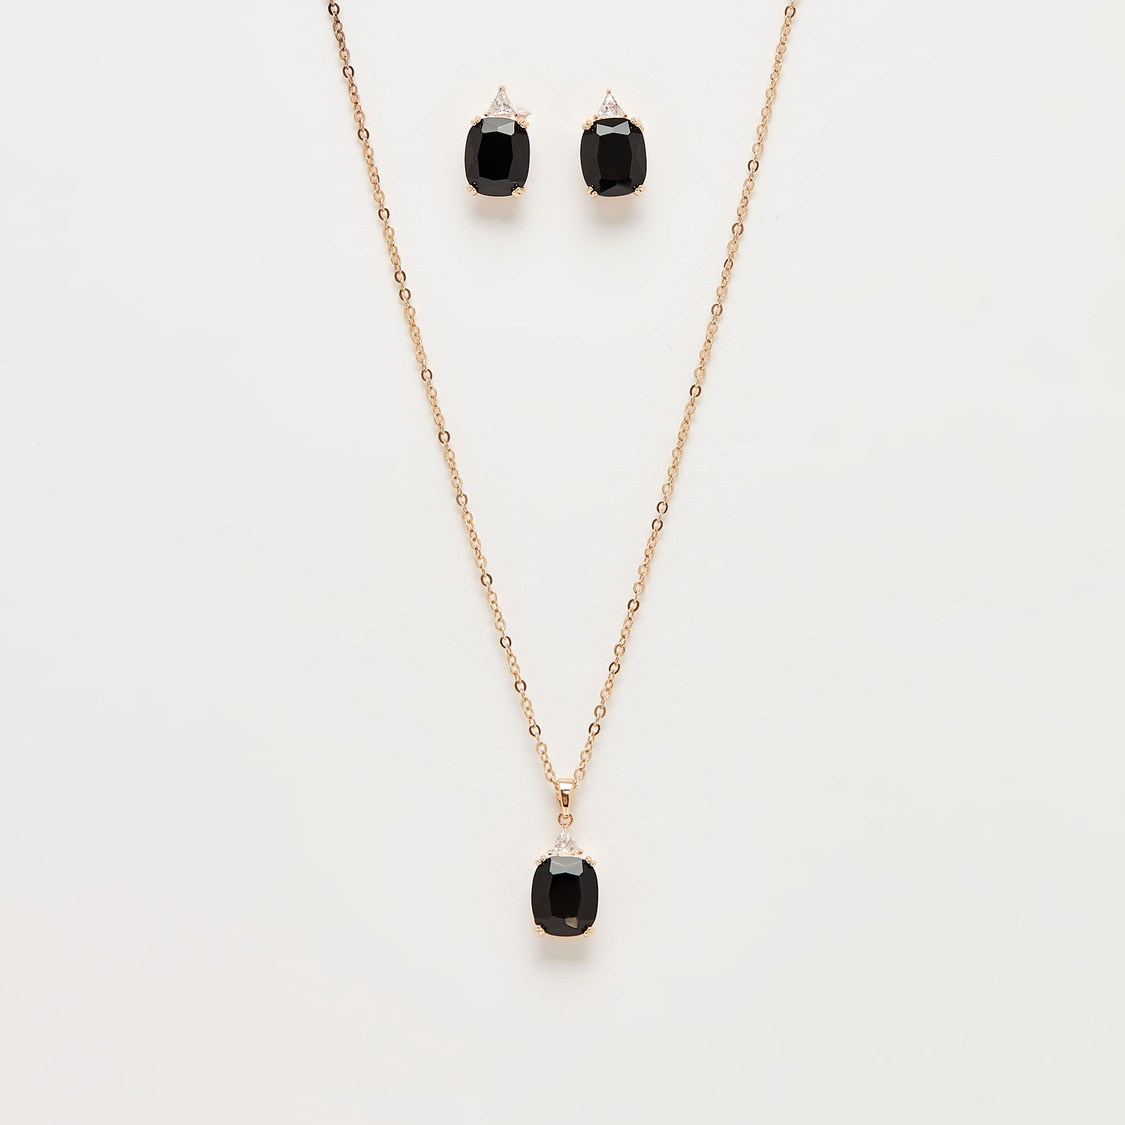 Embellished Pendant Necklace and Earrings